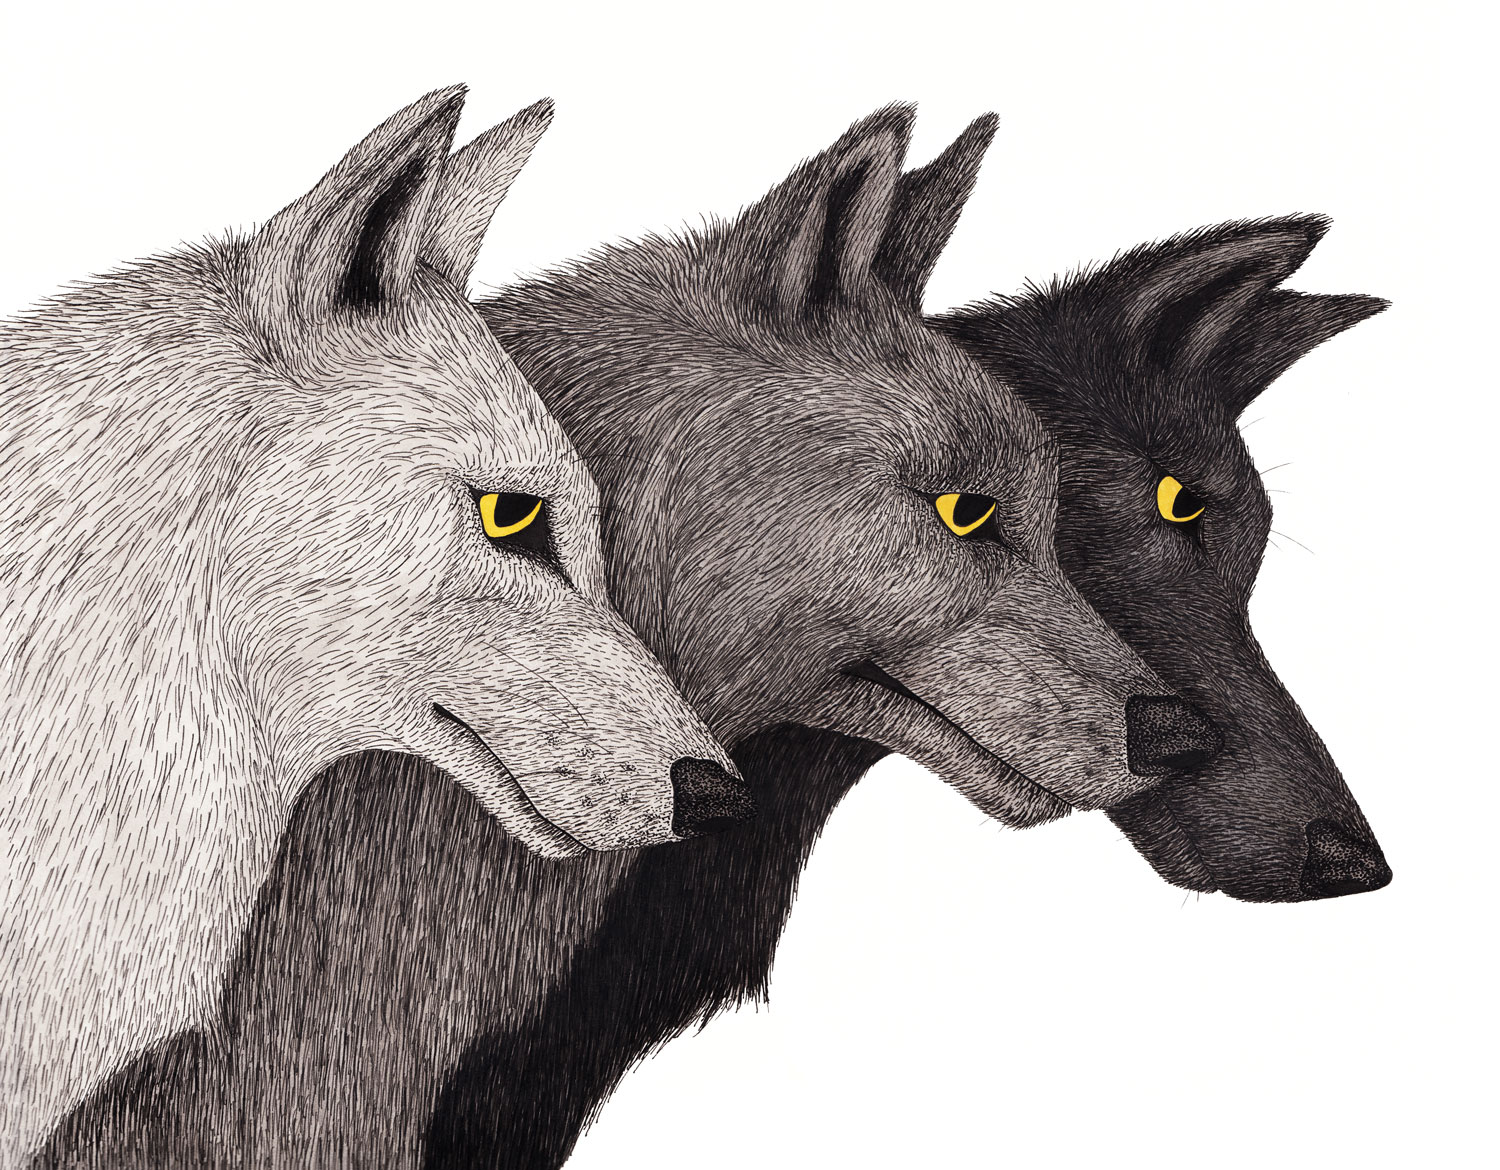 wolf-pack-grey-wolves-yellow-eyes-illustration-matthew-woods.jpg